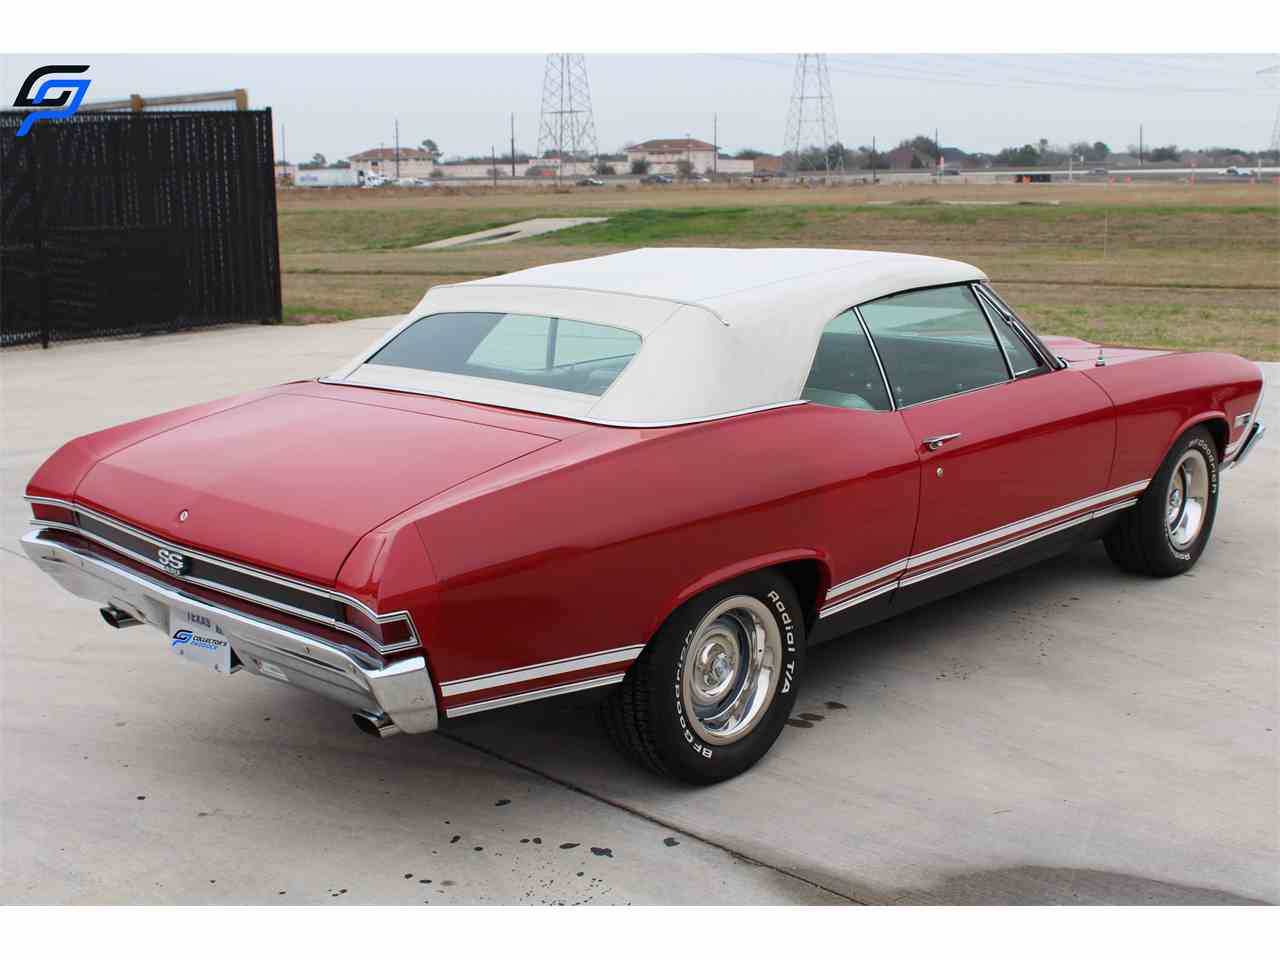 Large Picture of '68 Chevrolet Chevelle SS - $49,000.00 - KOM6